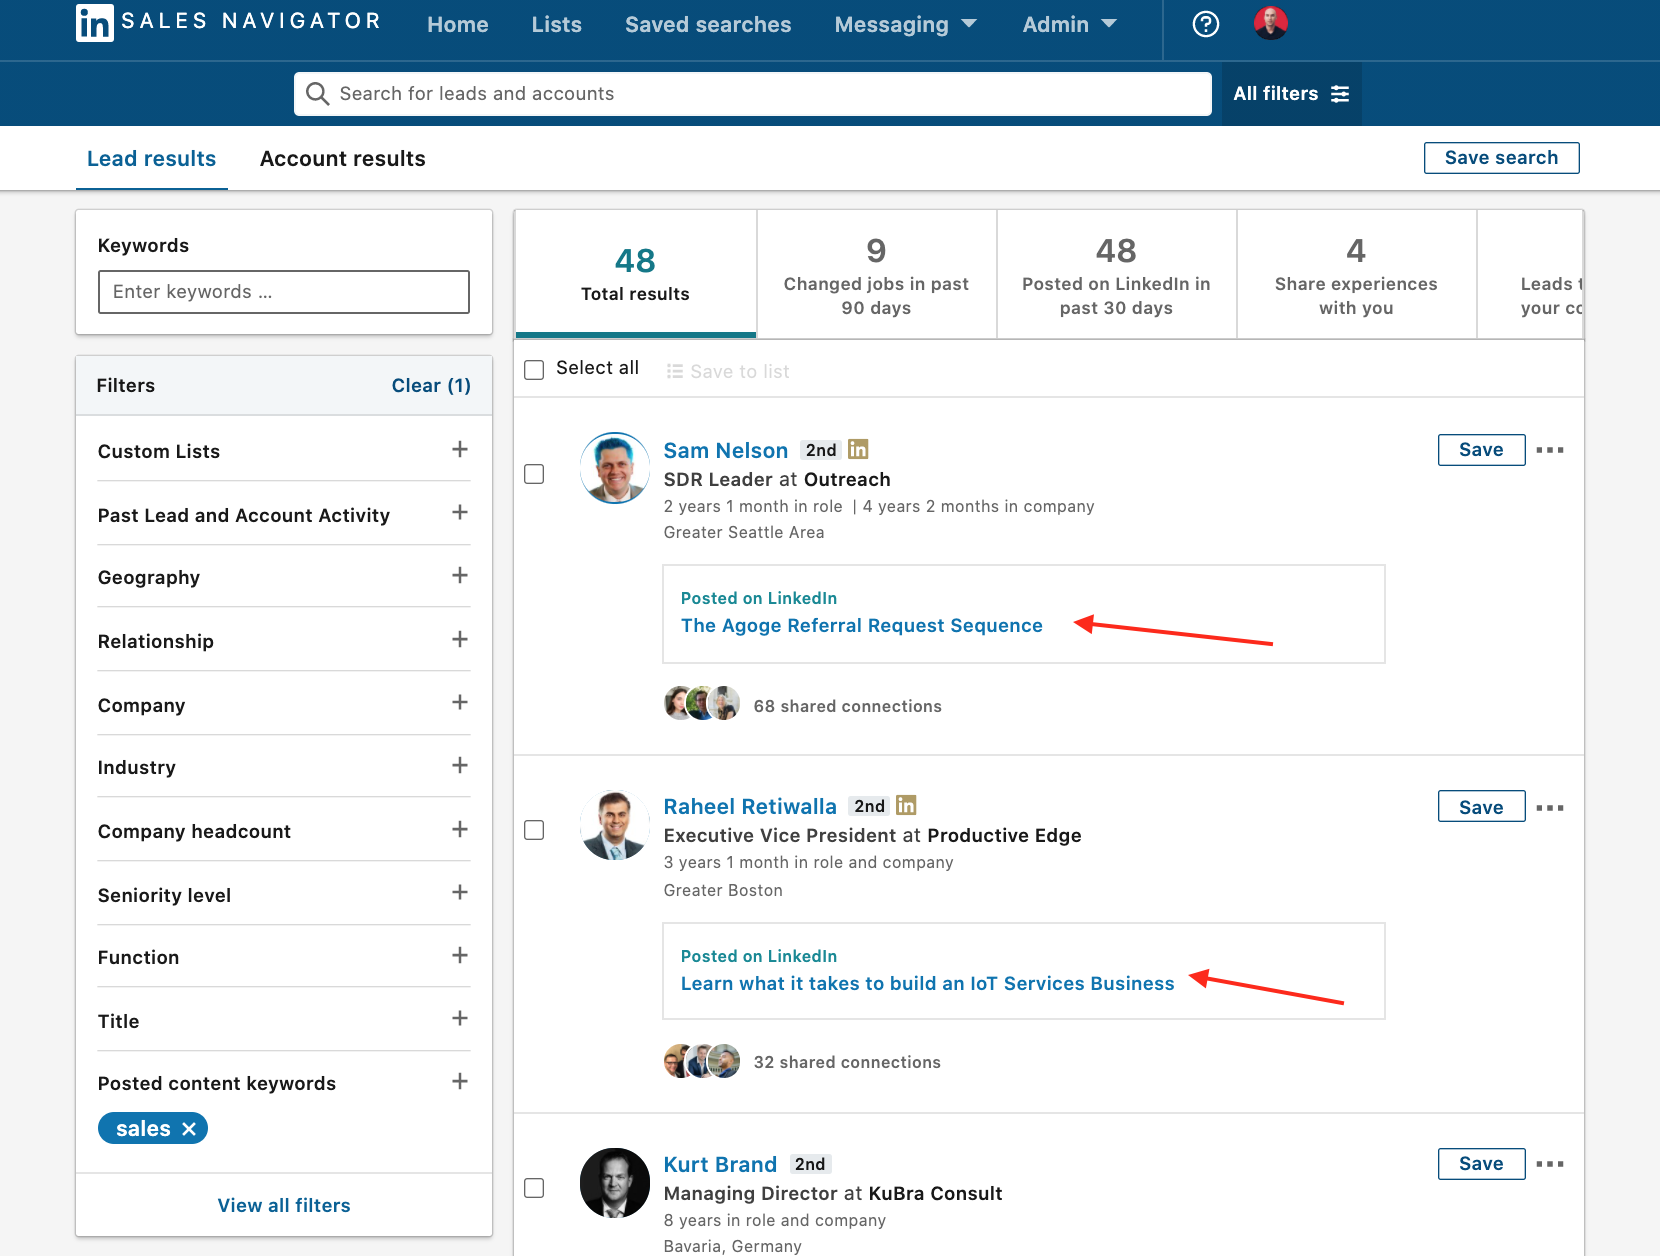 Linkedin content posted on sales naviagtor